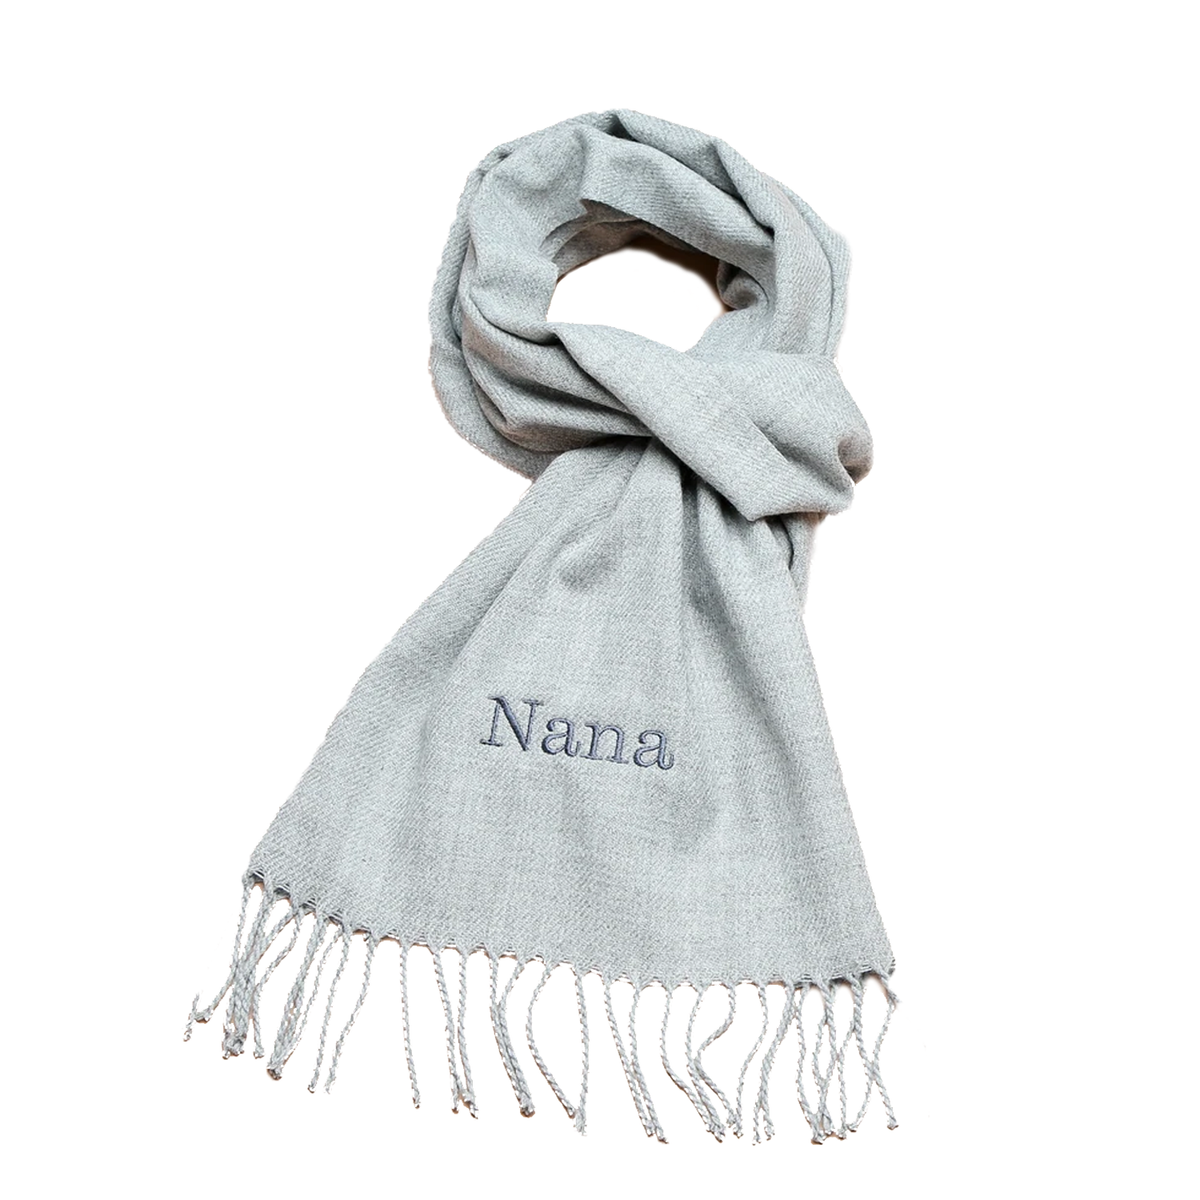 Personalised Embroidered Woven Scarf - 4 great colours to choose from!